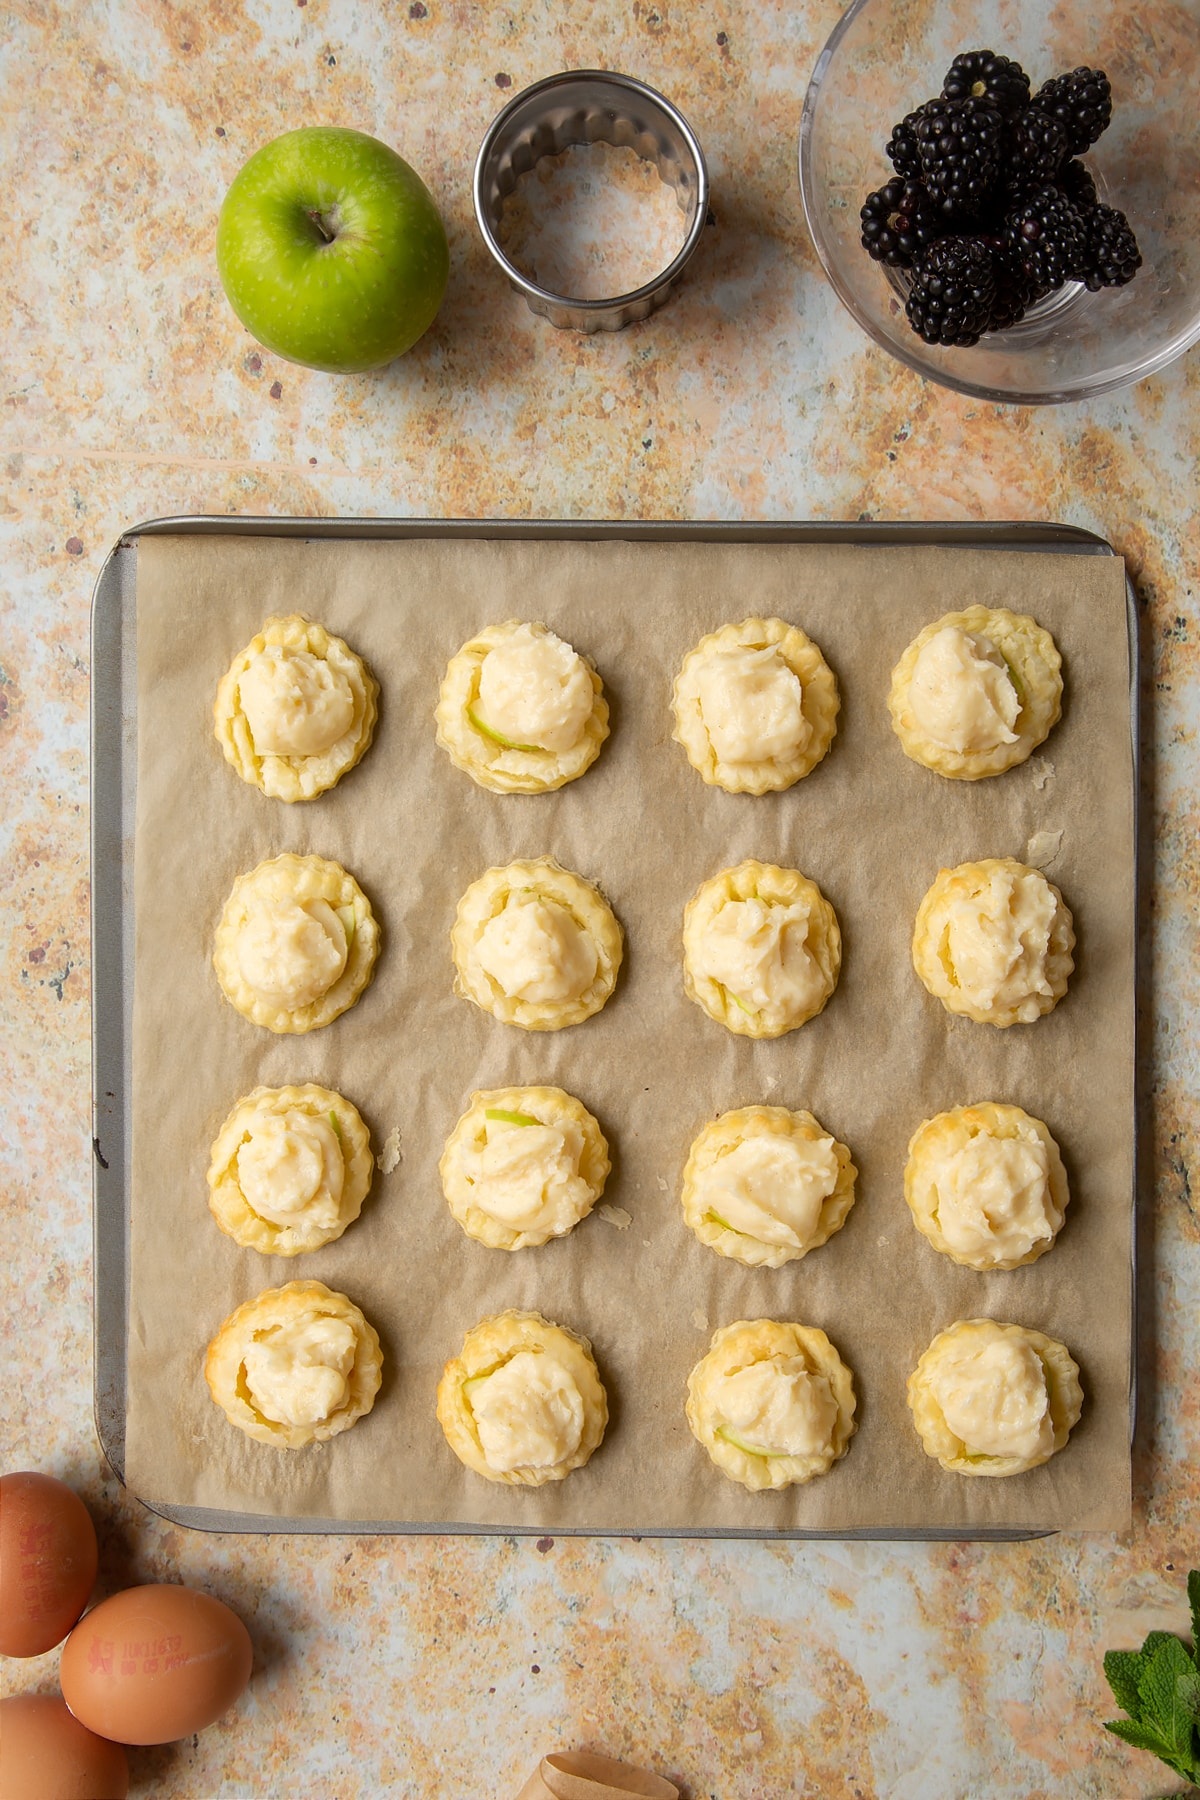 16 puff pastry discs topped with sliced apple and pastry cream sit on a lined baking sheet.